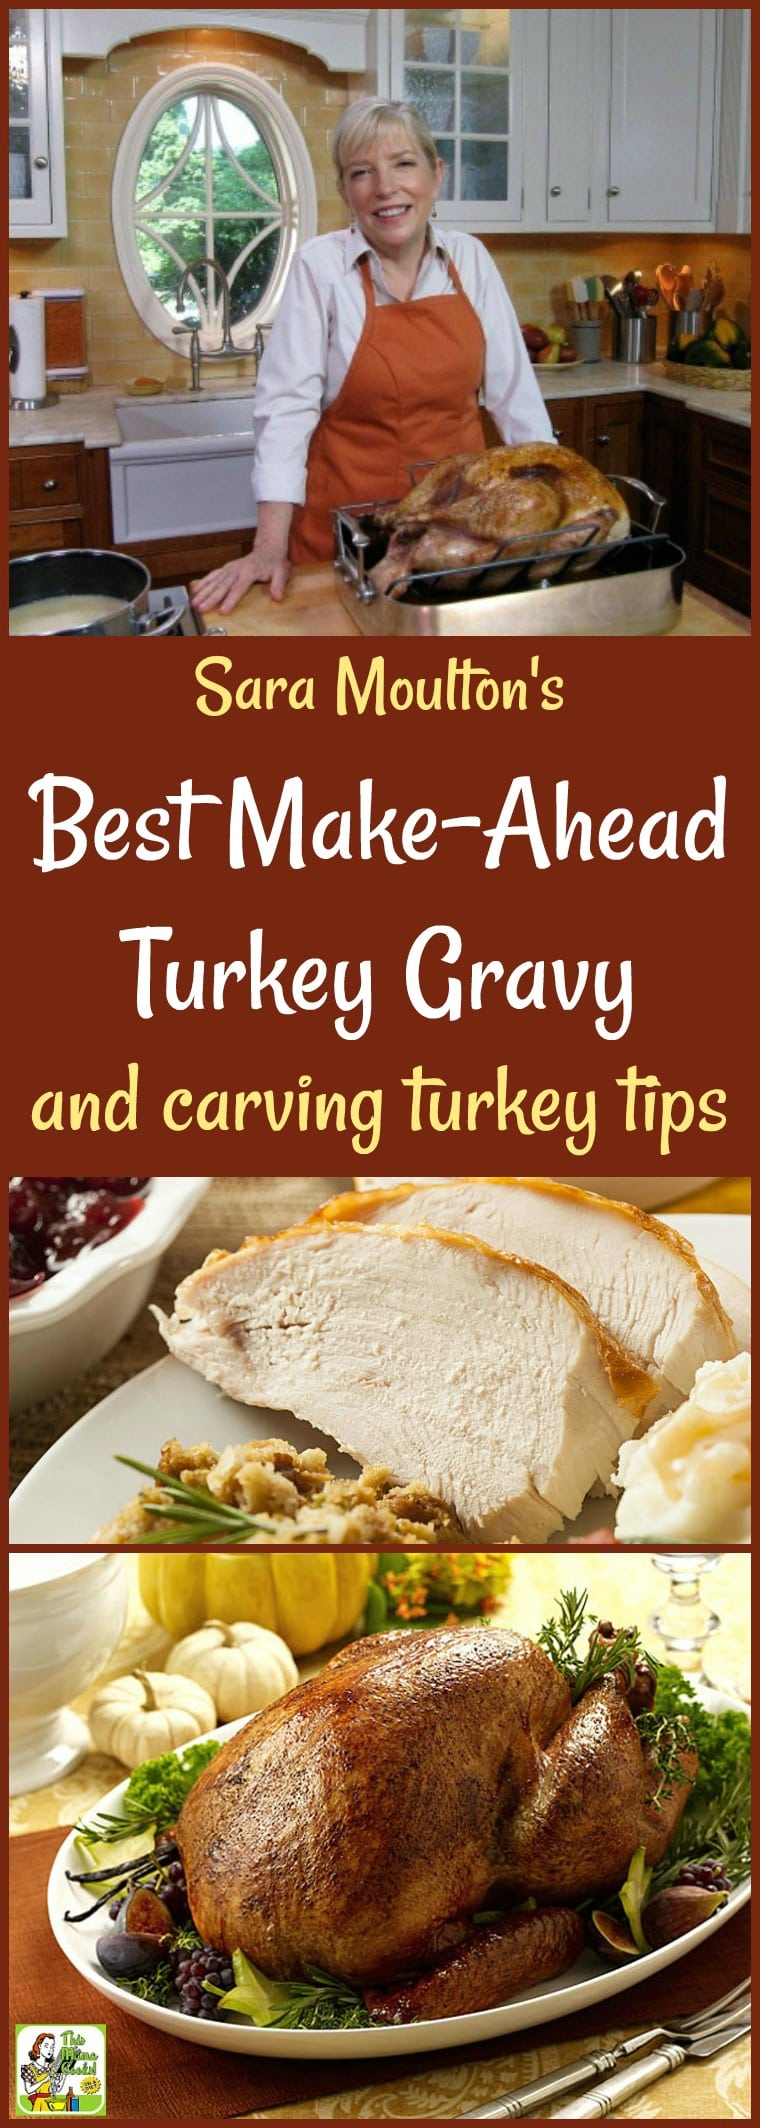 Need some Thanksgiving recipe help? Make Sara Moulton's Best Make-Ahead Turkey Gravy recipe! Comes with a gluten free option. Get carving turkey tips and meal prep tips, too.  #thanksgiving #gravy #turkey #recipetips #mealprep #saramoulton #knives #recipe #easy #recipeoftheday #healthyrecipes #glutenfree #easyrecipes